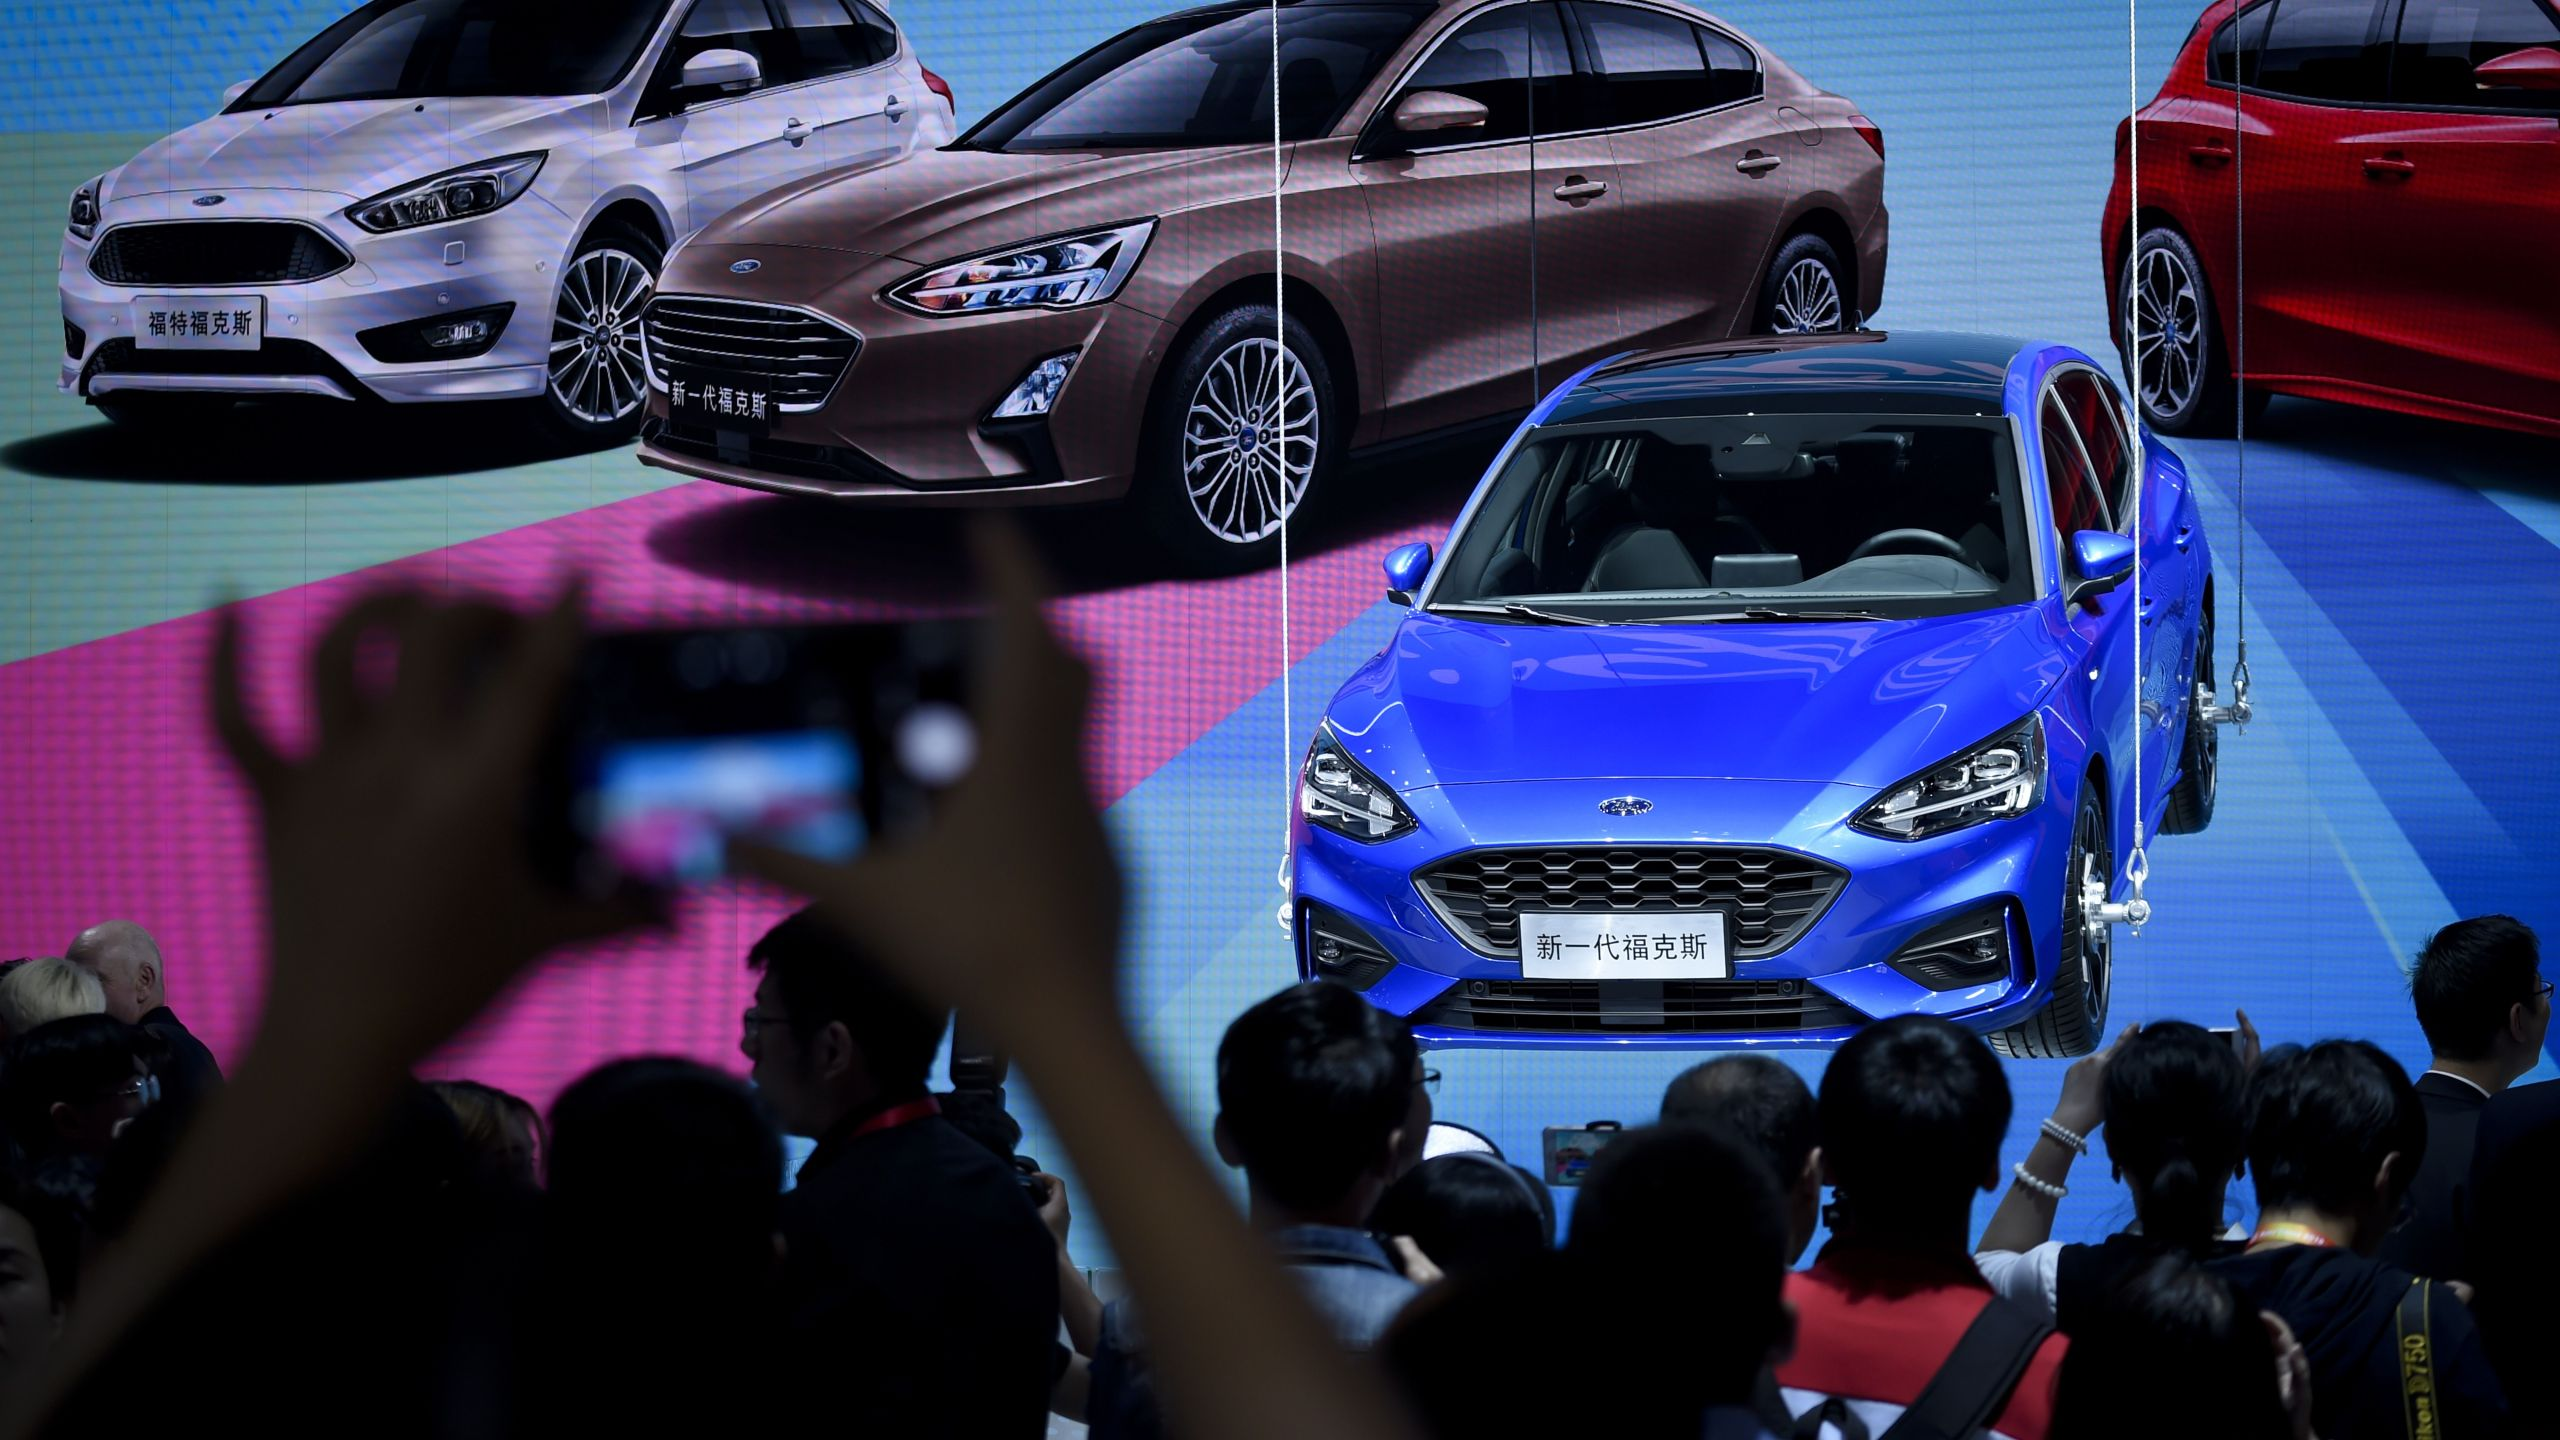 Visitors look at a display for the new Ford Focus at the Beijing auto show in Beijing on April 25, 2018. (Credit: WANG ZHAO/AFP/Getty Images)